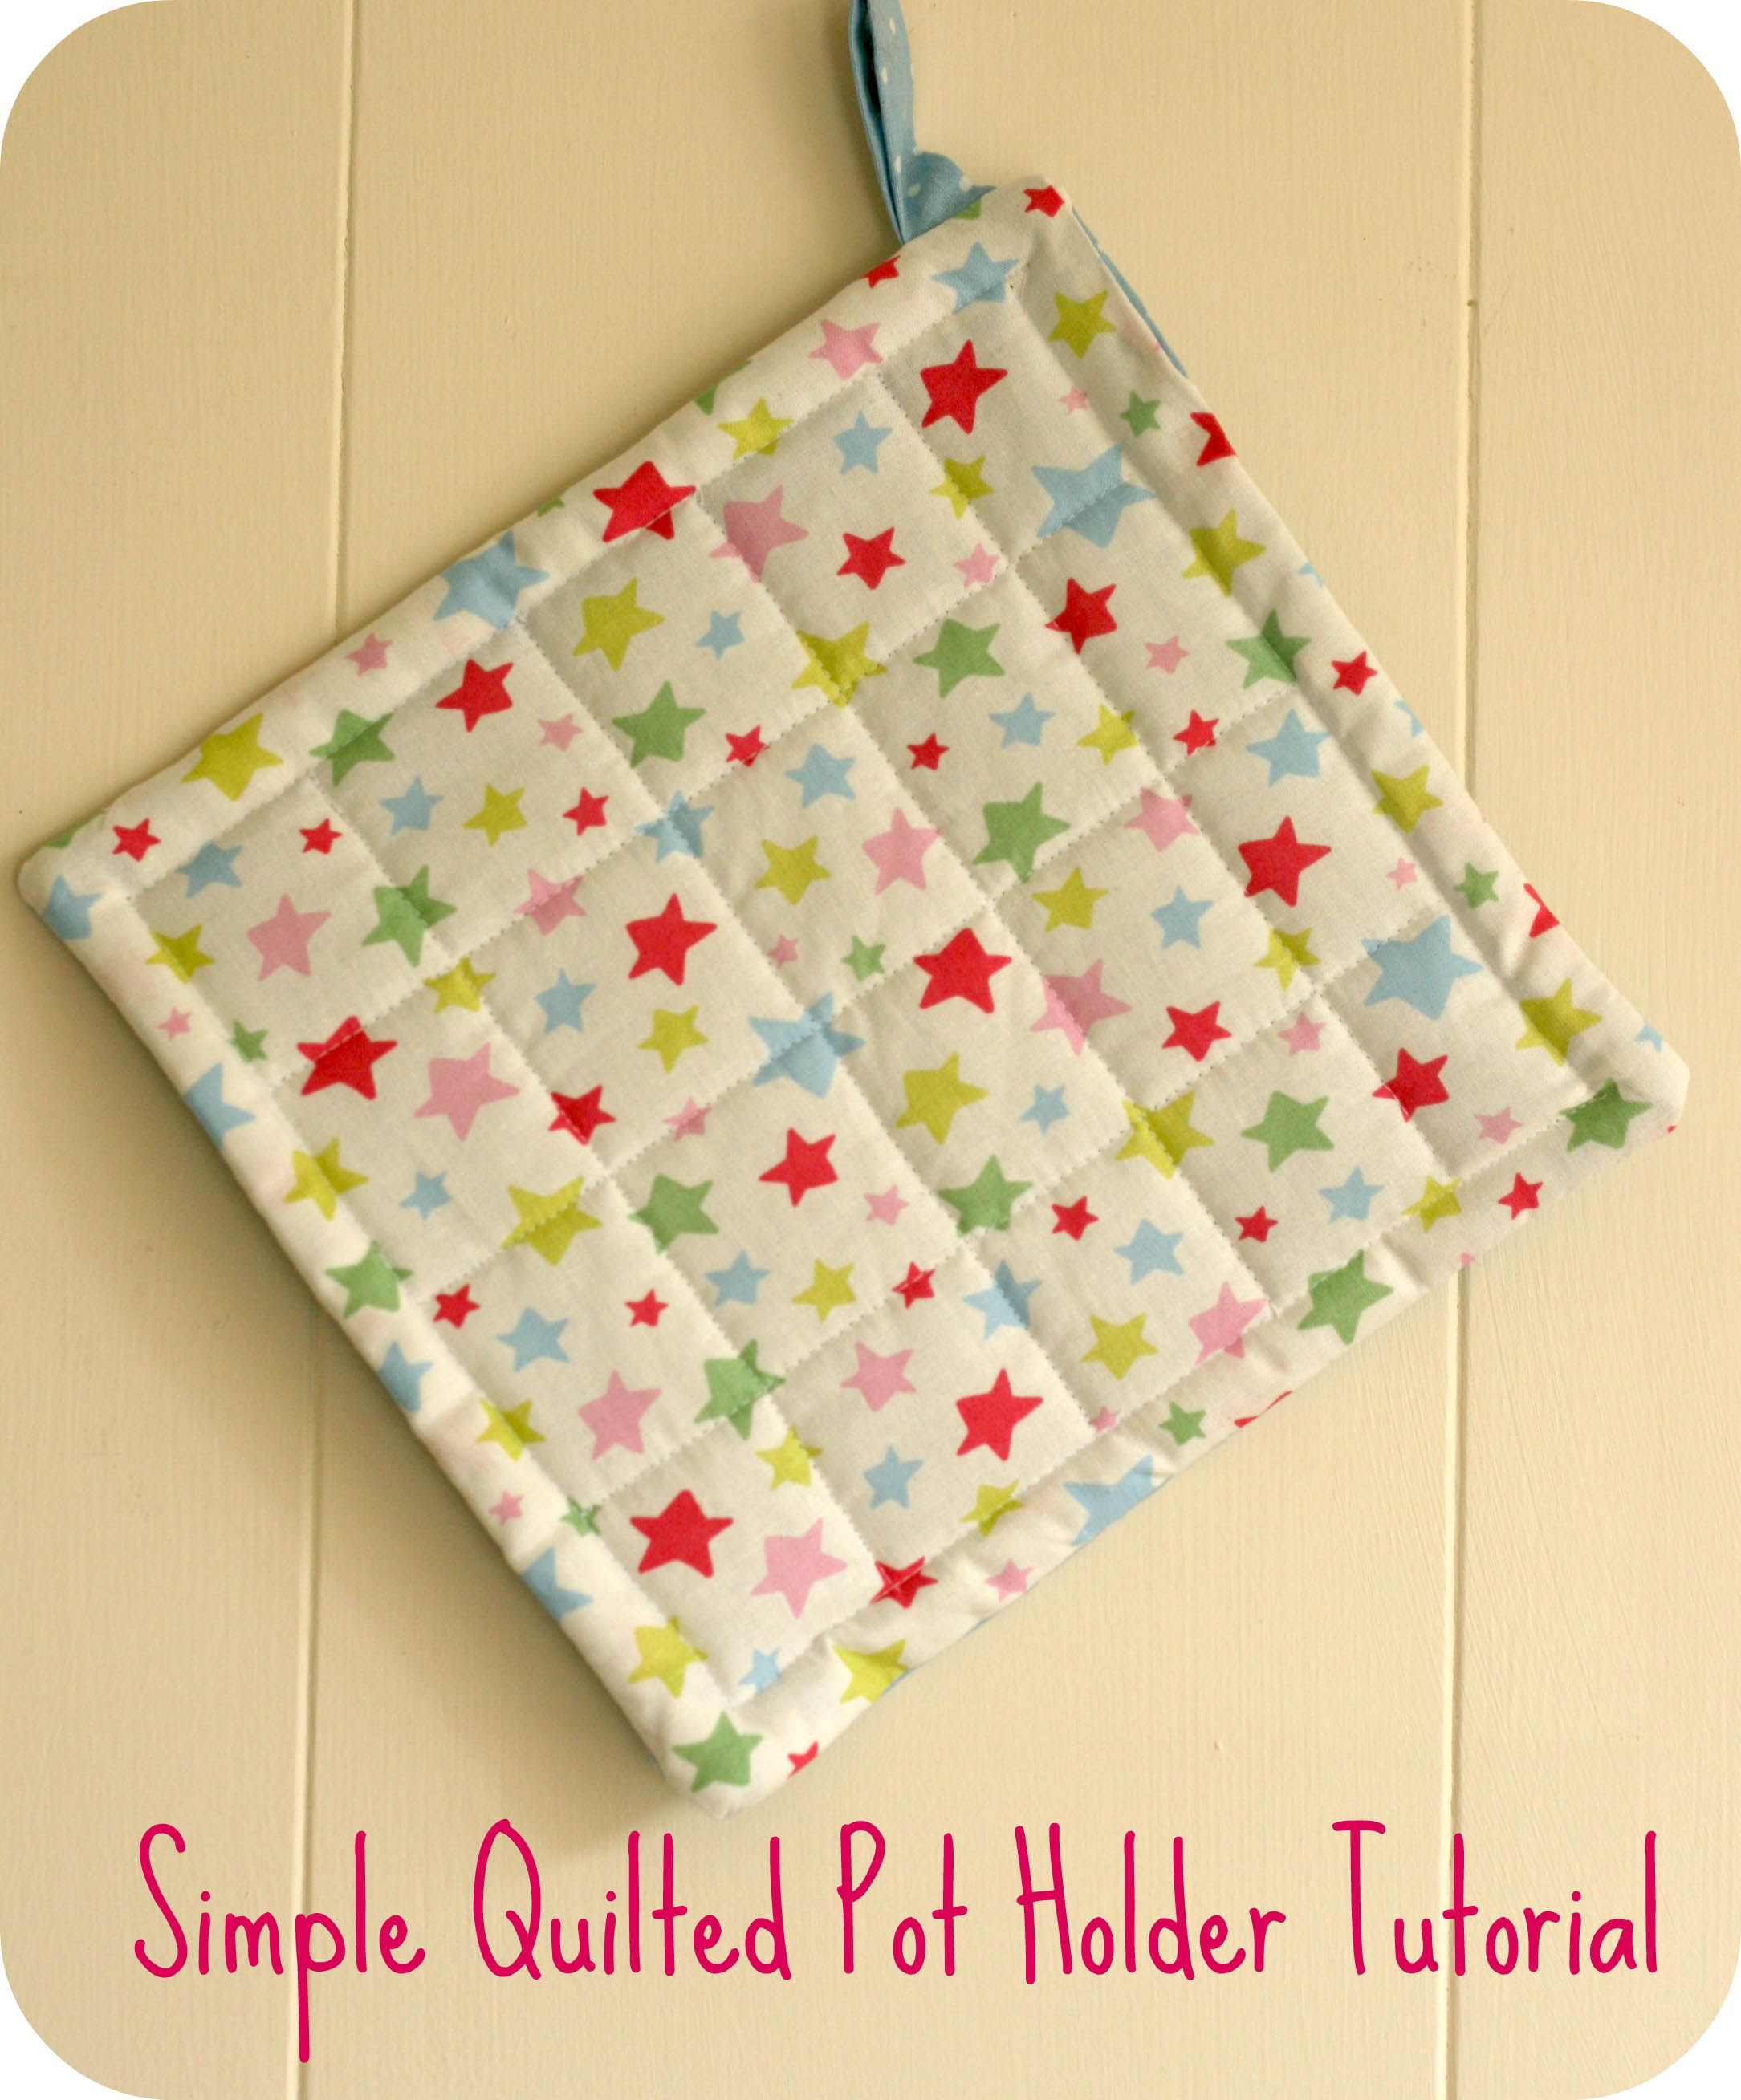 Simple quilted pot holder tutorial